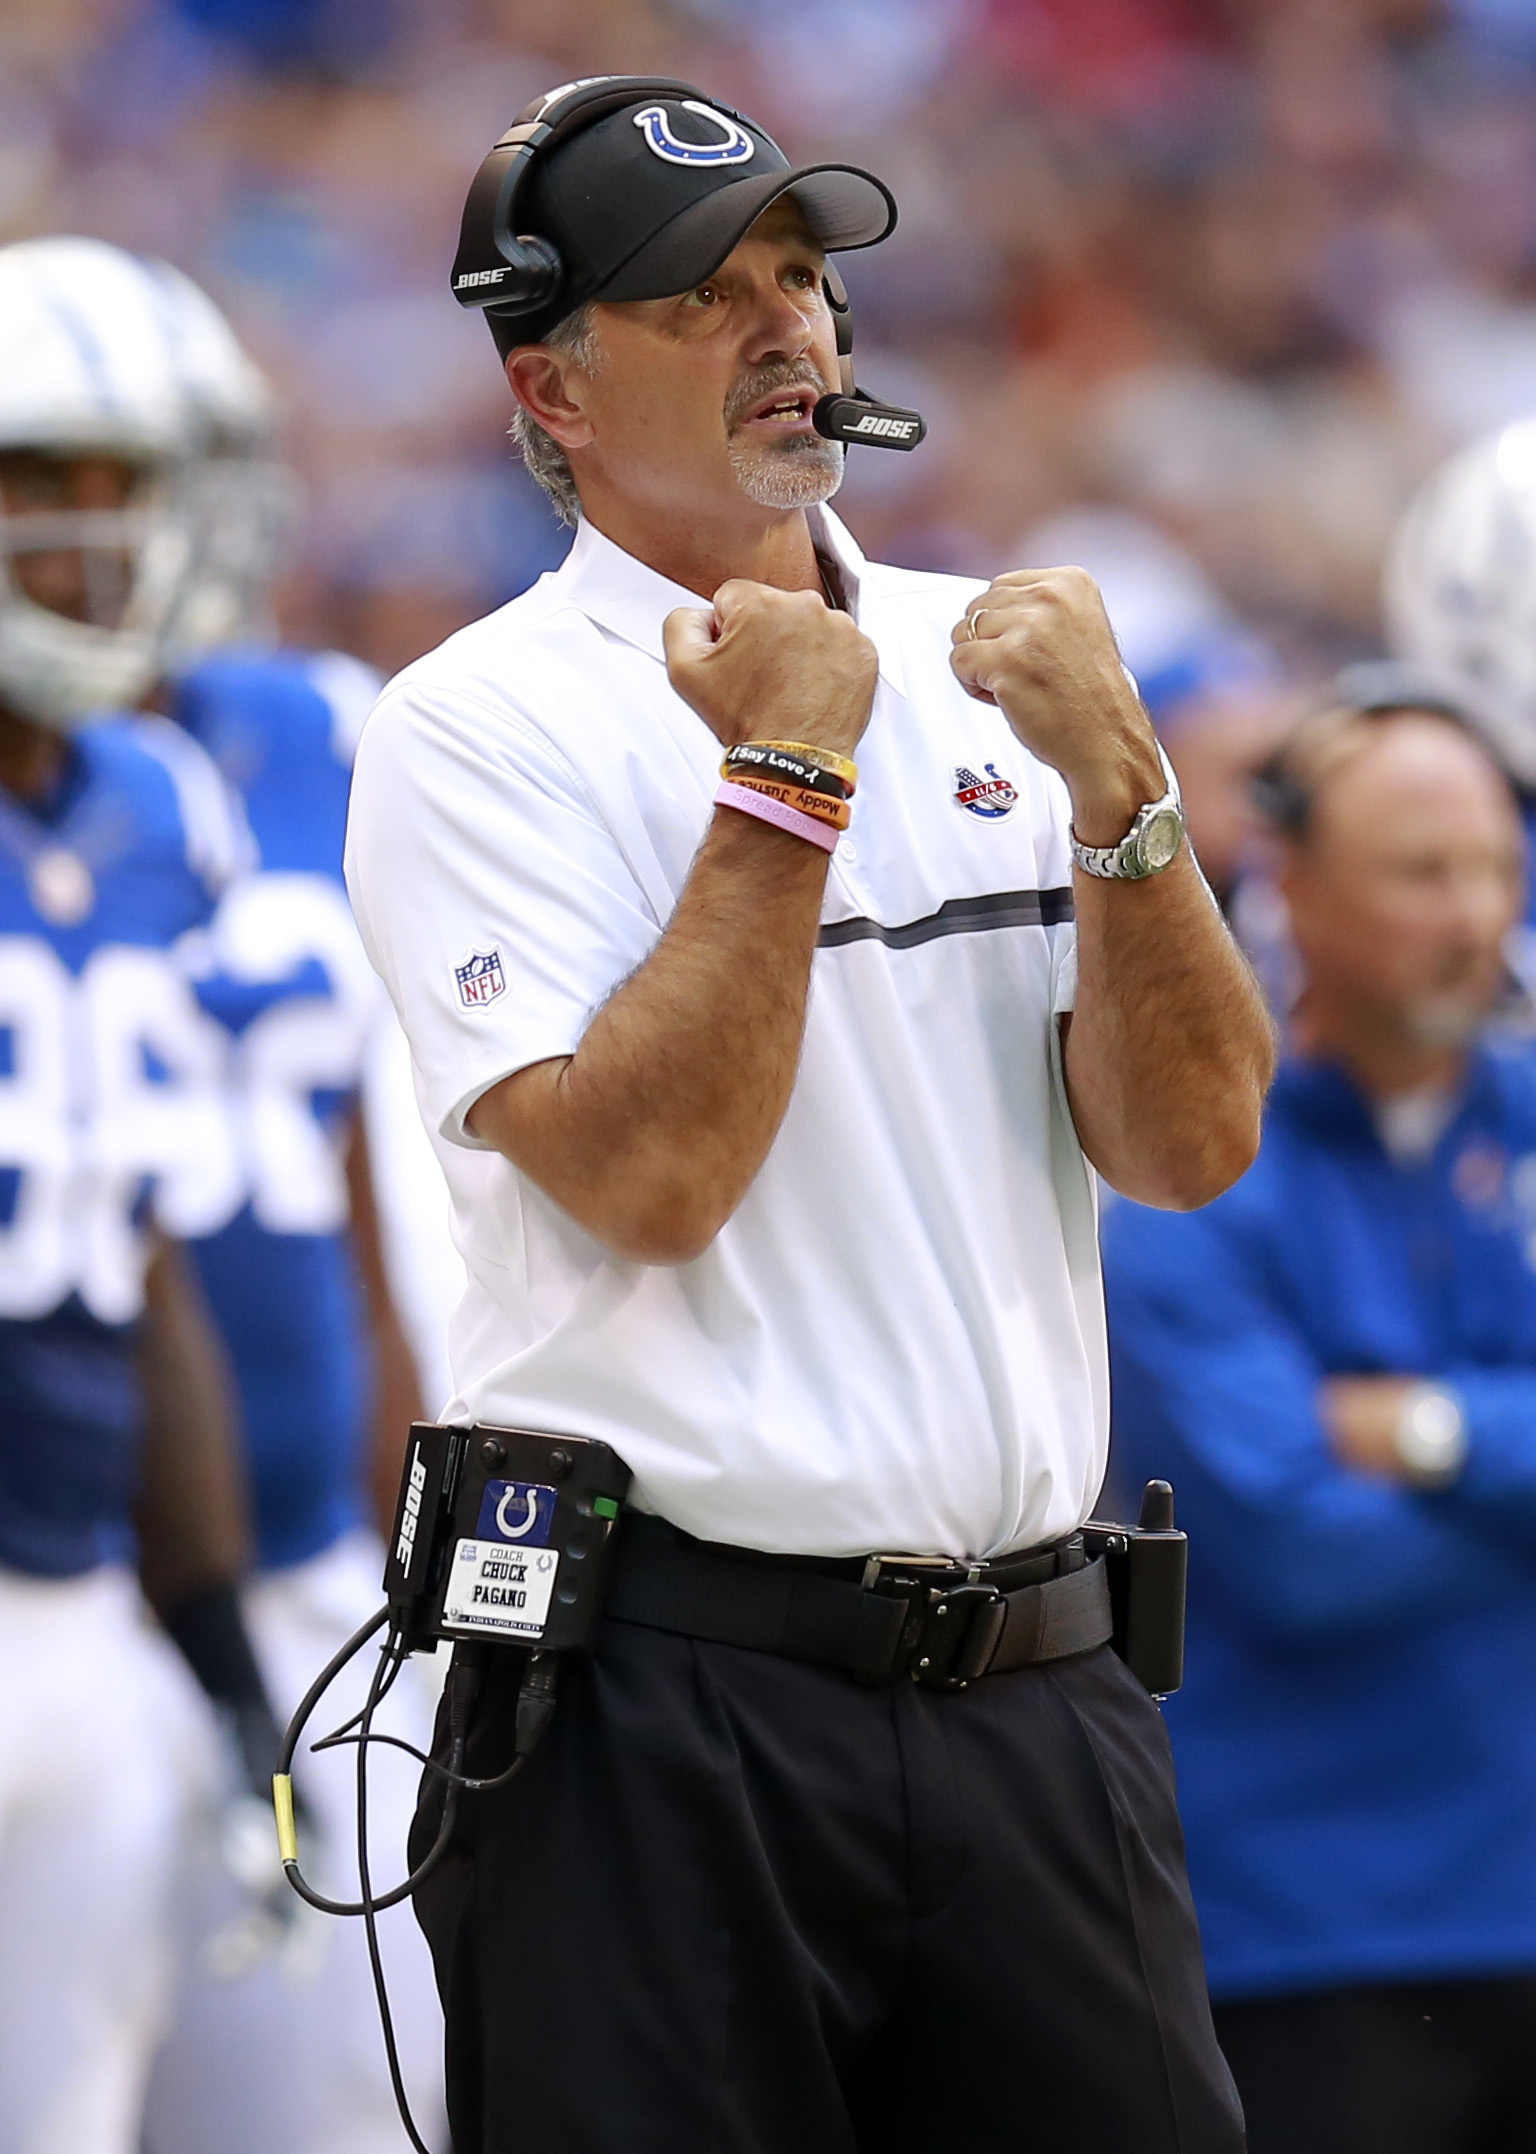 Indianapolis Colts head coach Chuck Pagano signals from the sideline during the first half of an NFL football game against the Detroit Lions in Indianapolis, Sunday, Sept. 11, 2016. (AP Photo/R Brent Smith)